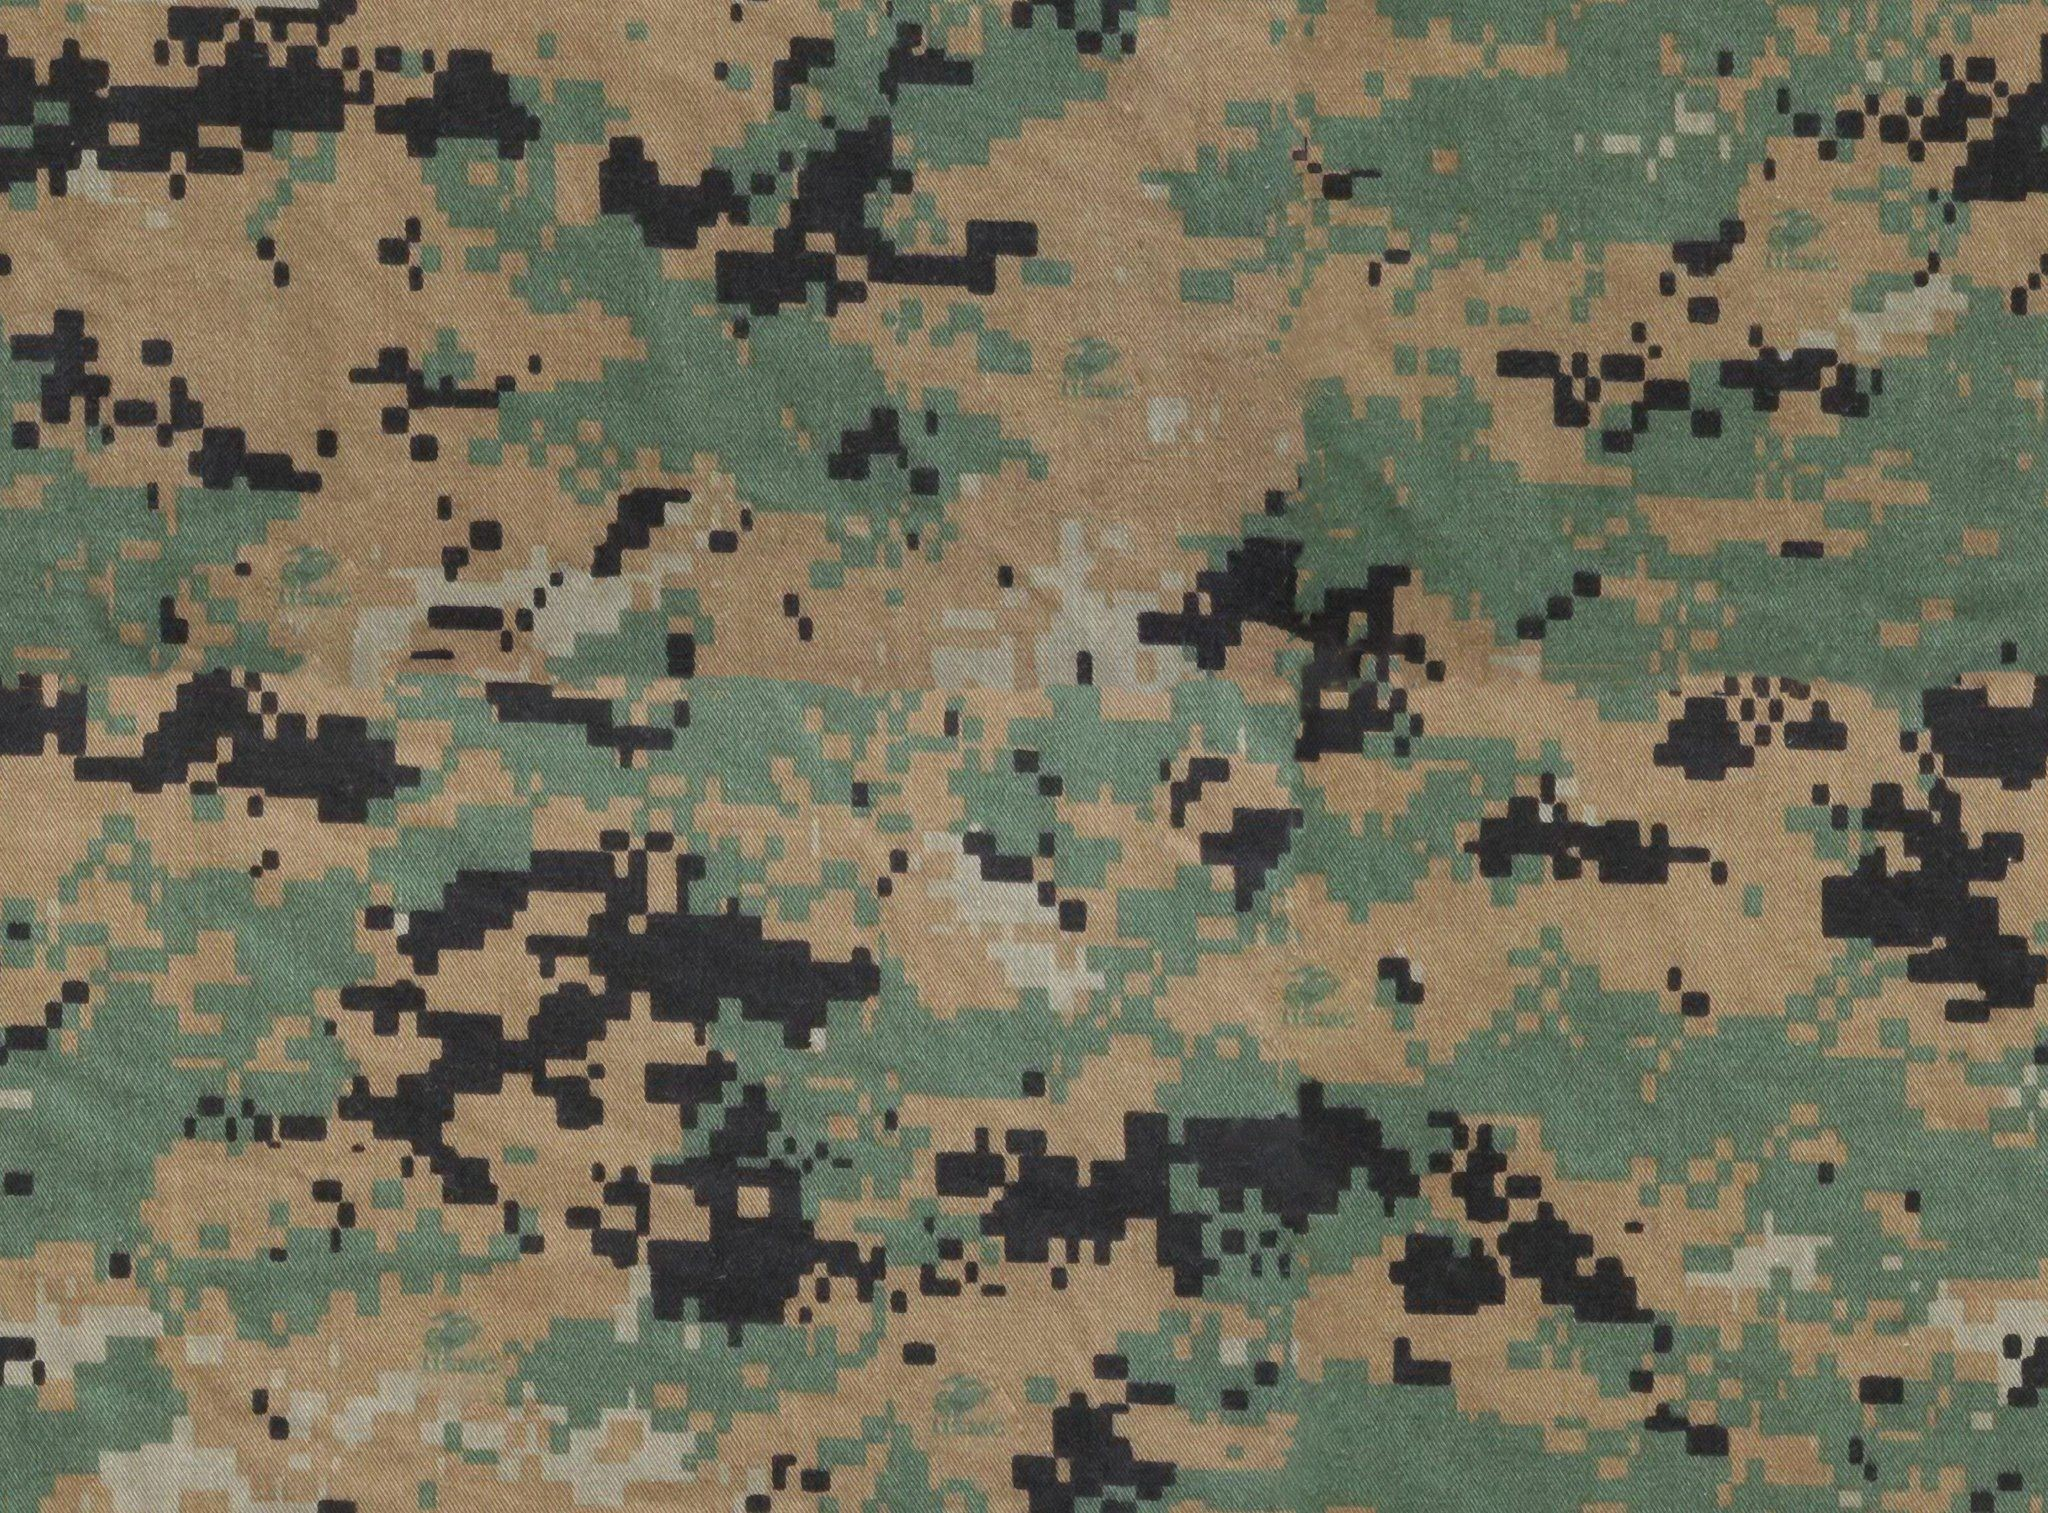 2048x1513 hd camo backgrounds #11074